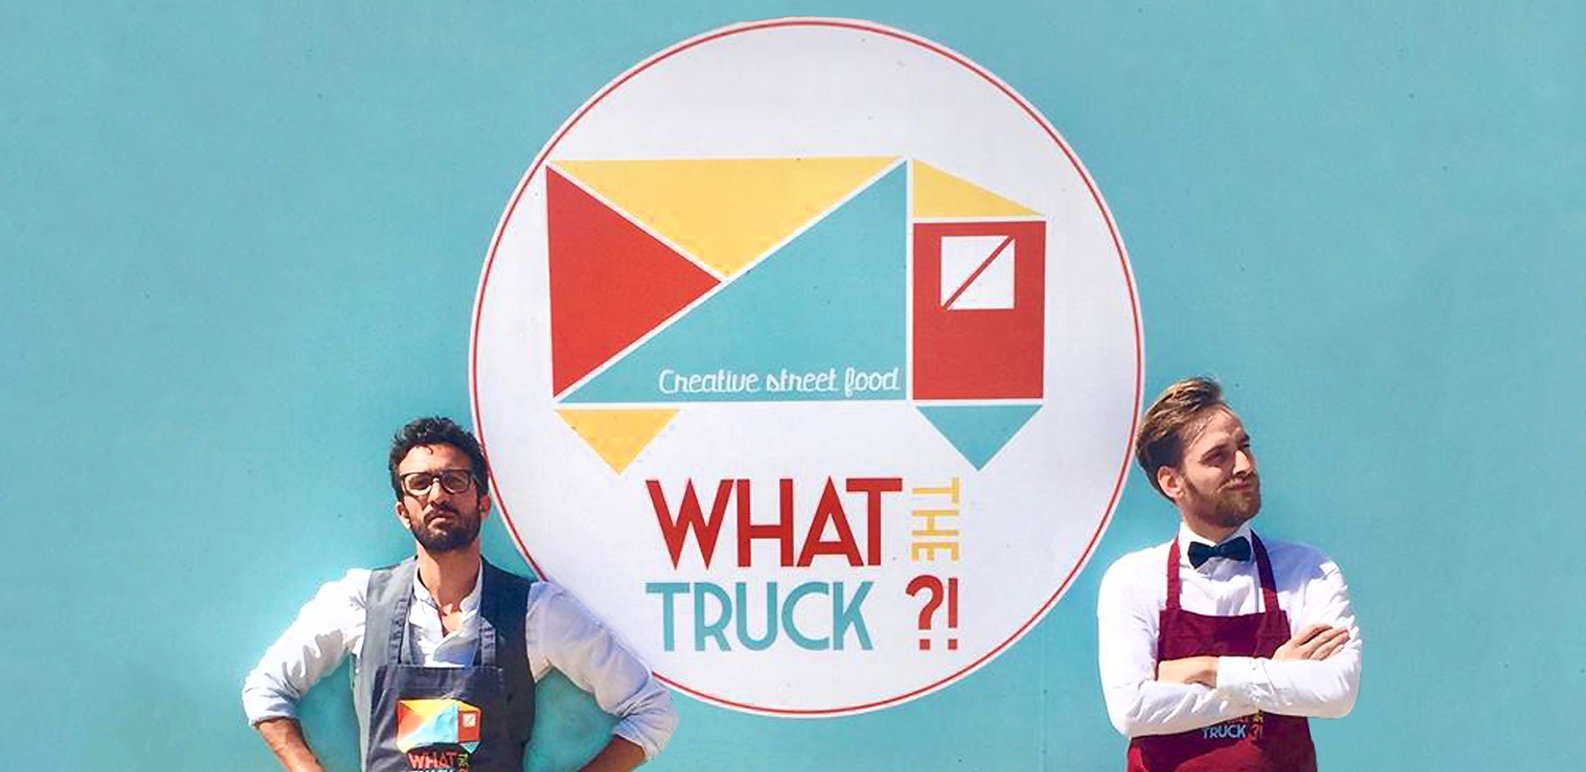 yann clement what the truck food